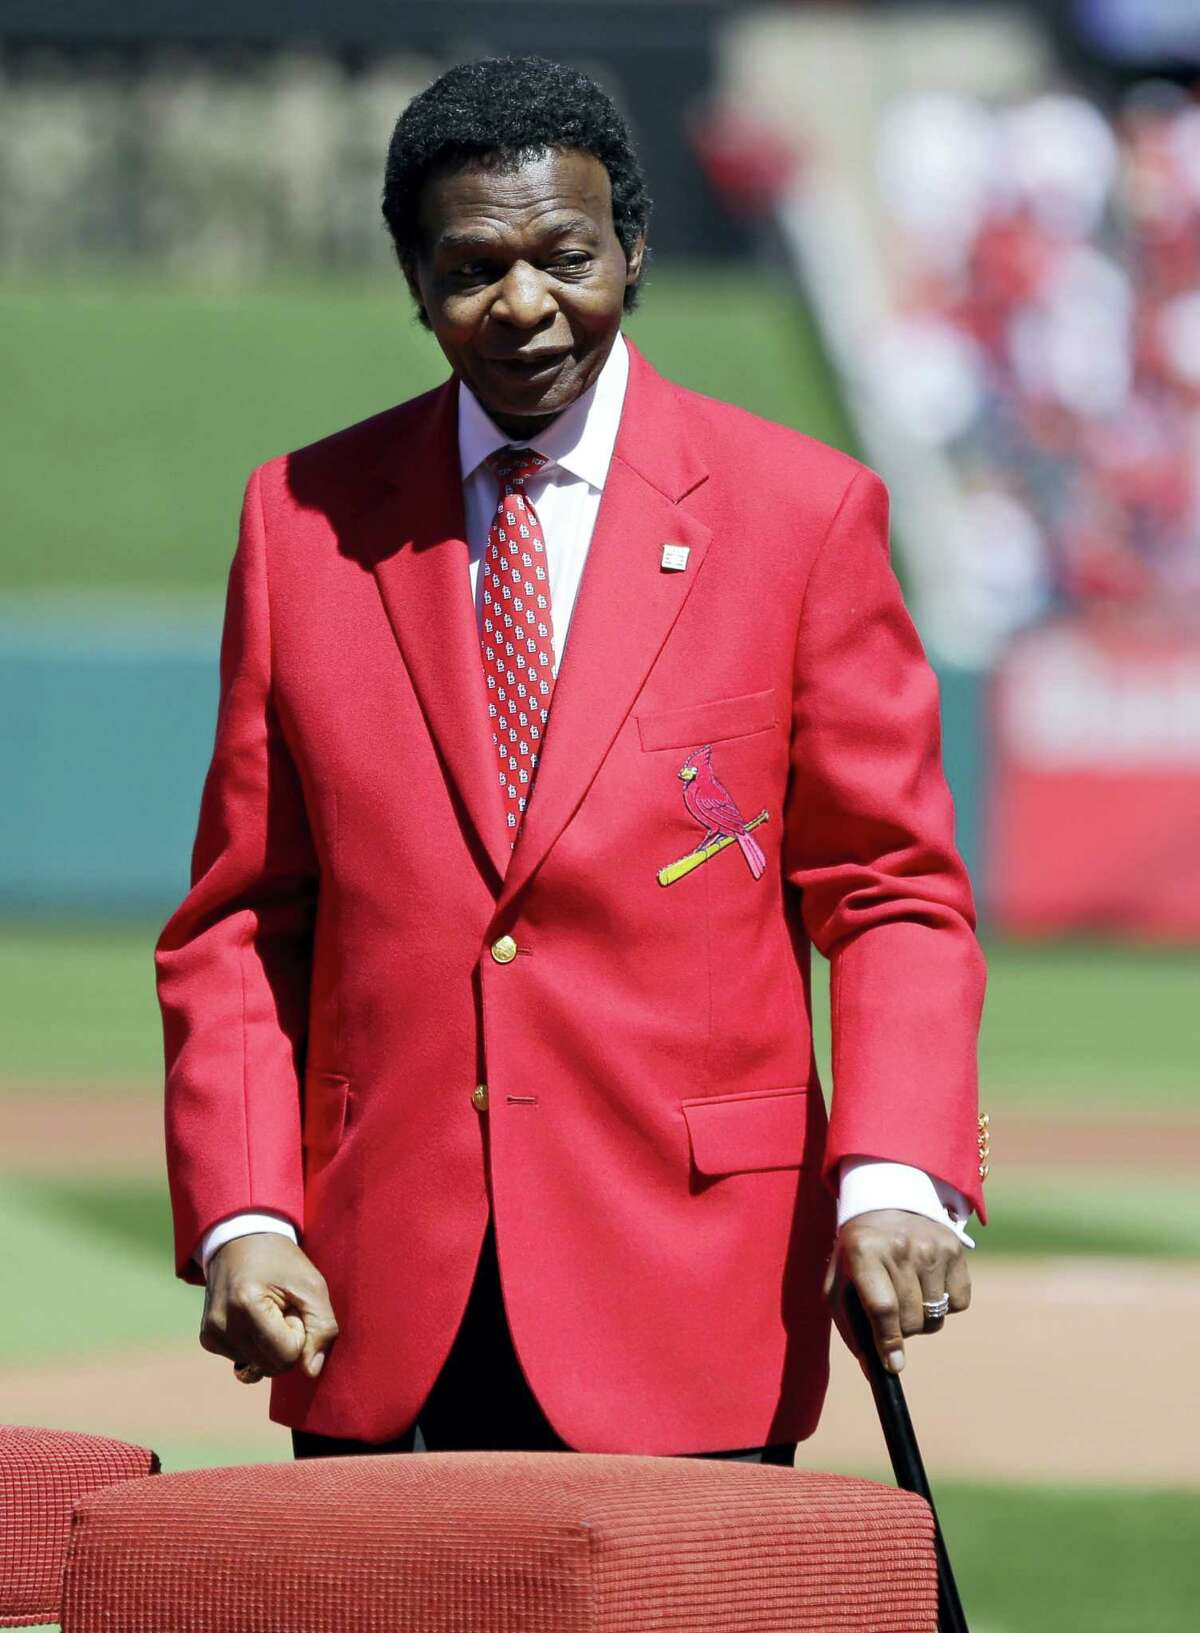 Former St. Louis Cardinals great Lou Brock was recently diagnosed with bone cancer and will miss a scheduled upcoming appearance at Bush Stadium.